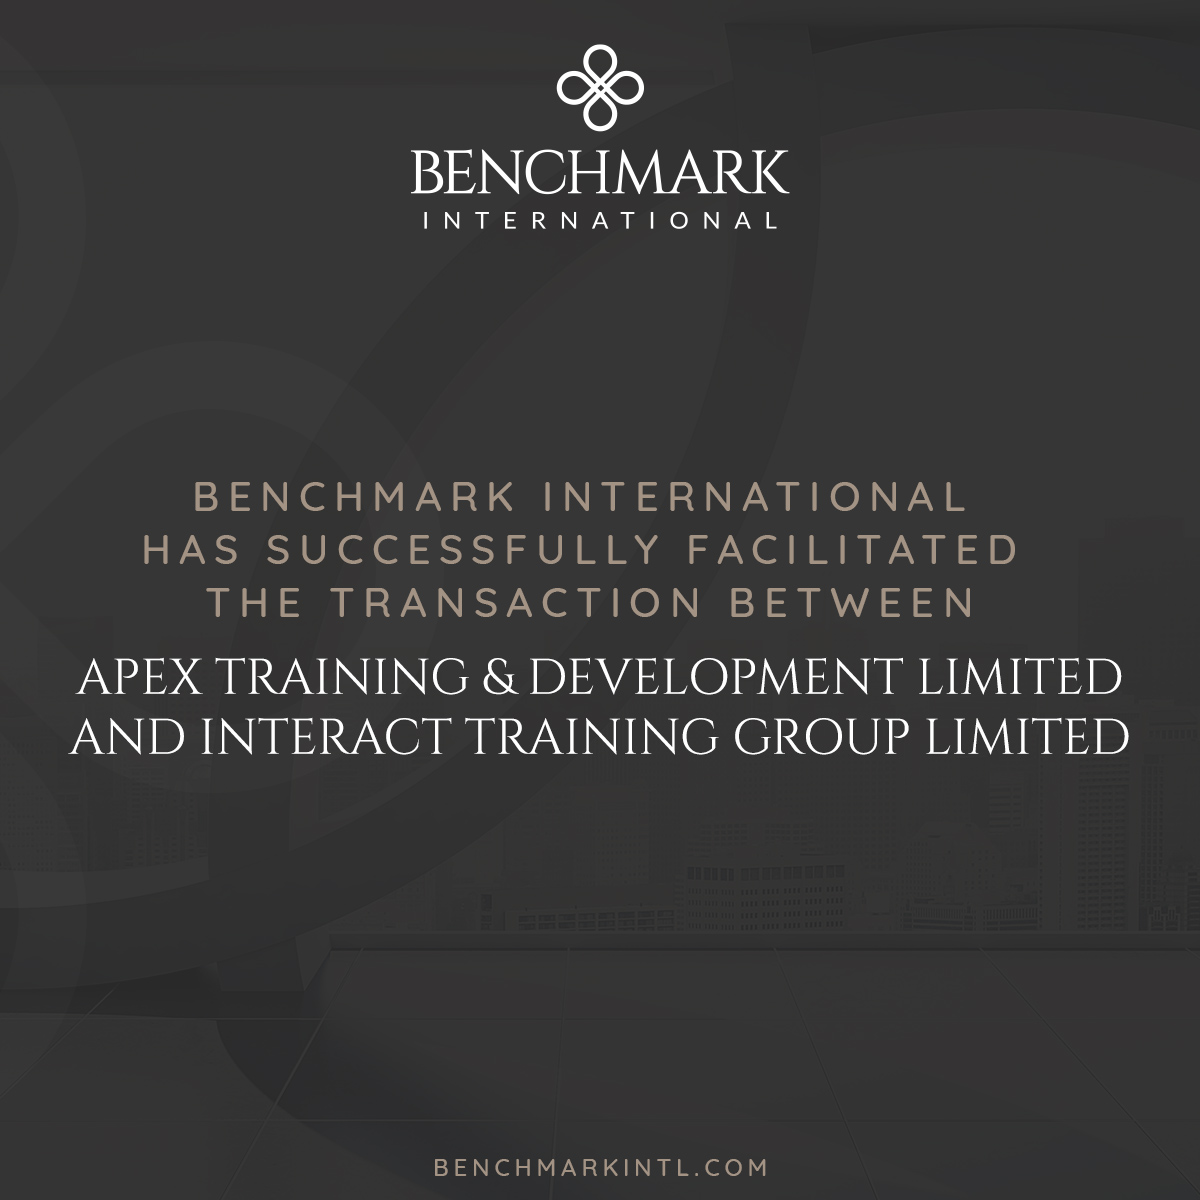 Apex Acquired by Intereact Training Group